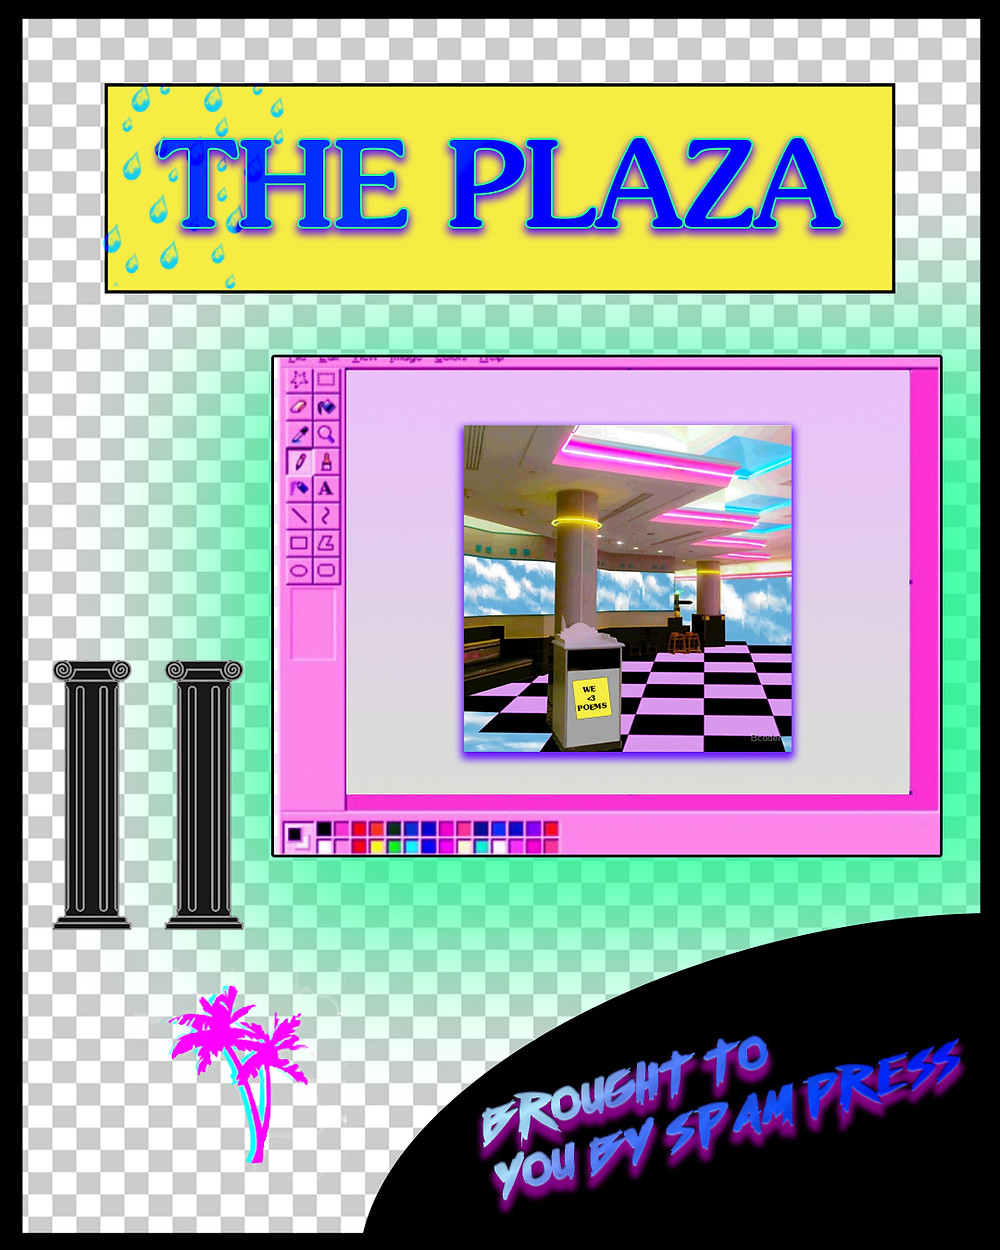 a vaporwave style plaza environment on checkerboard background with two columns and pink palm trees with text THE PLAZA BROUGHT TO YOU BY SPAM PRESS